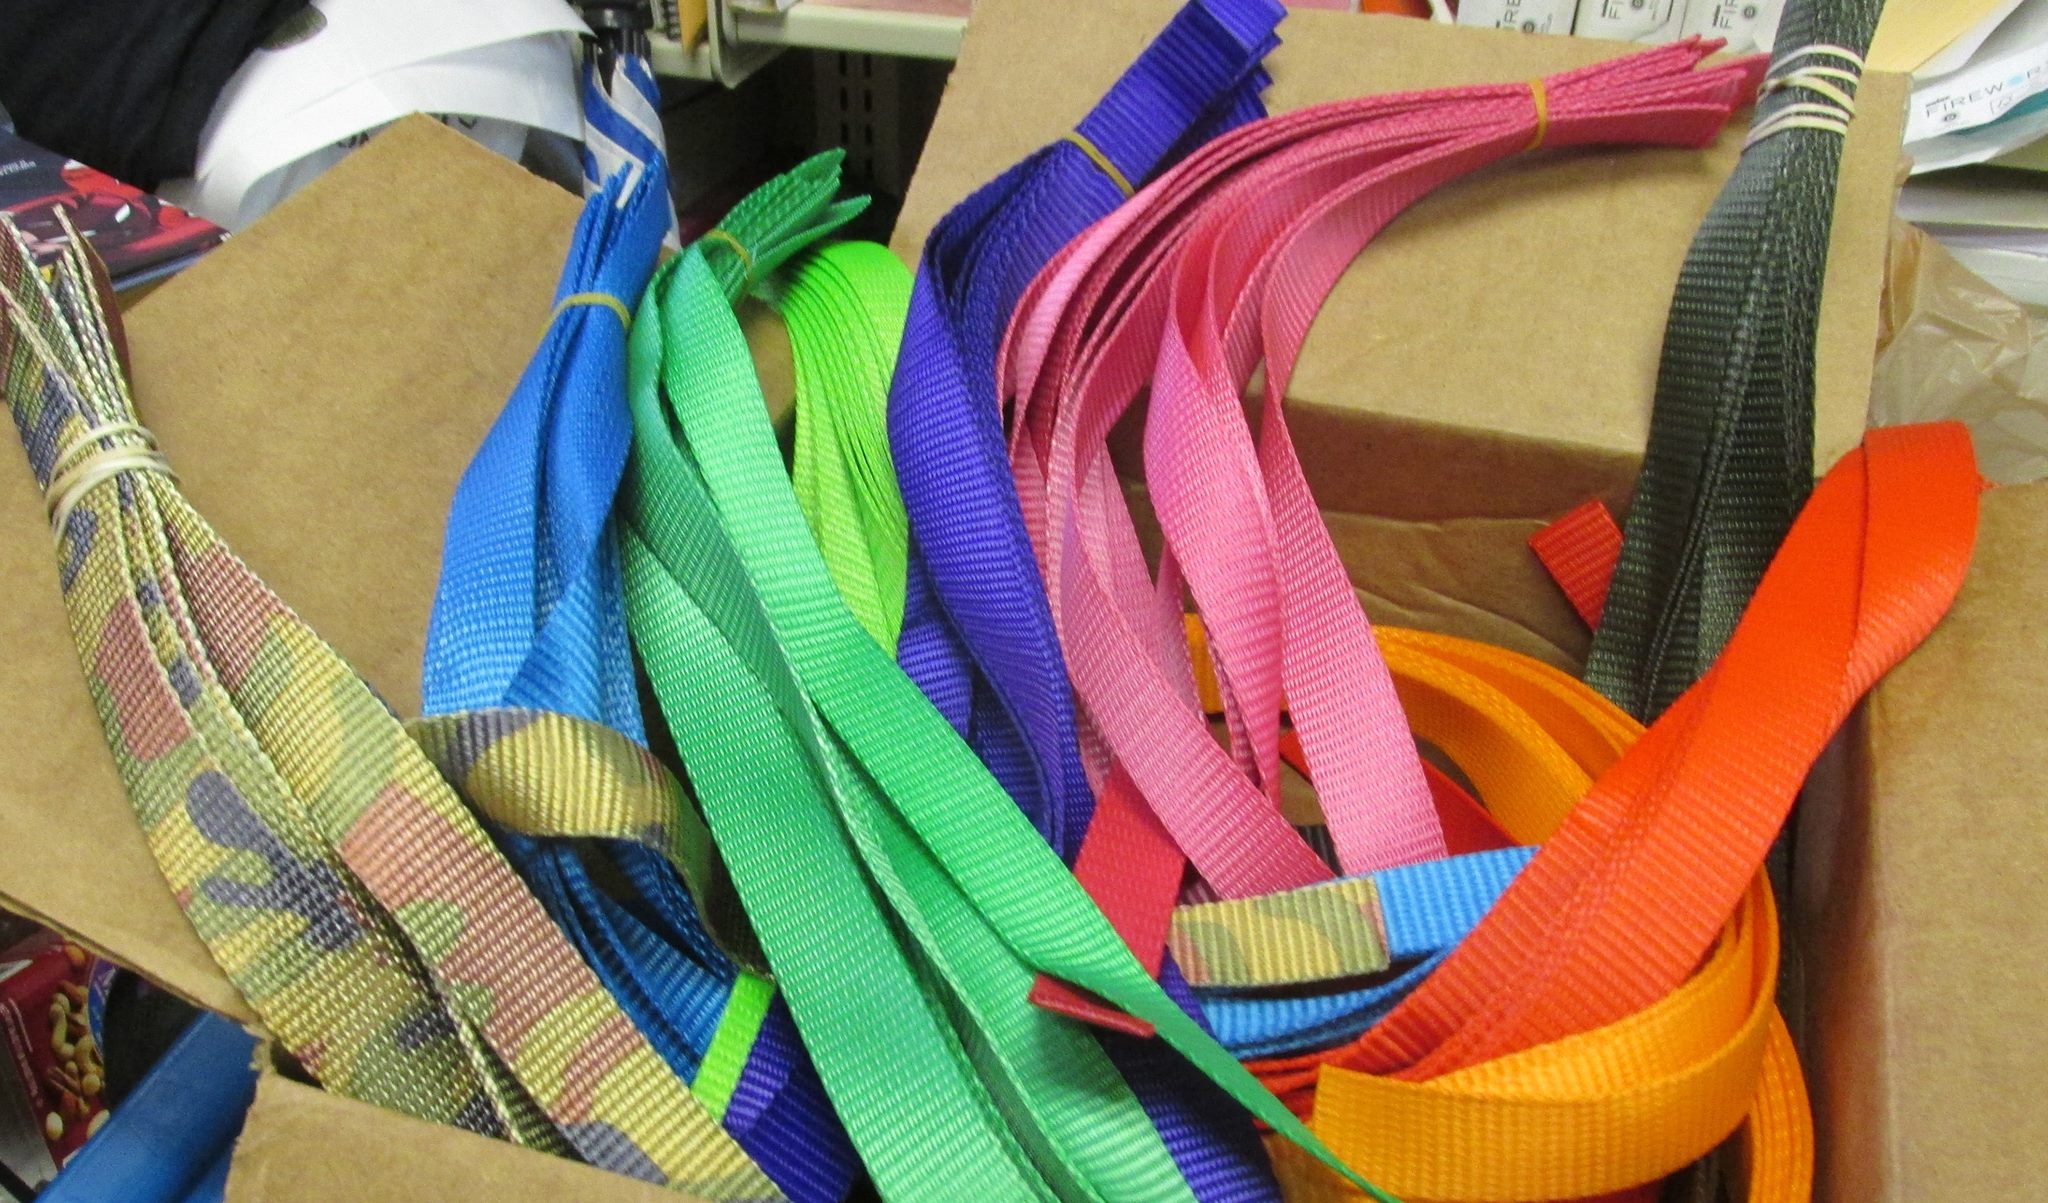 US Cargo Control Webbing Donated to Children's Library Program